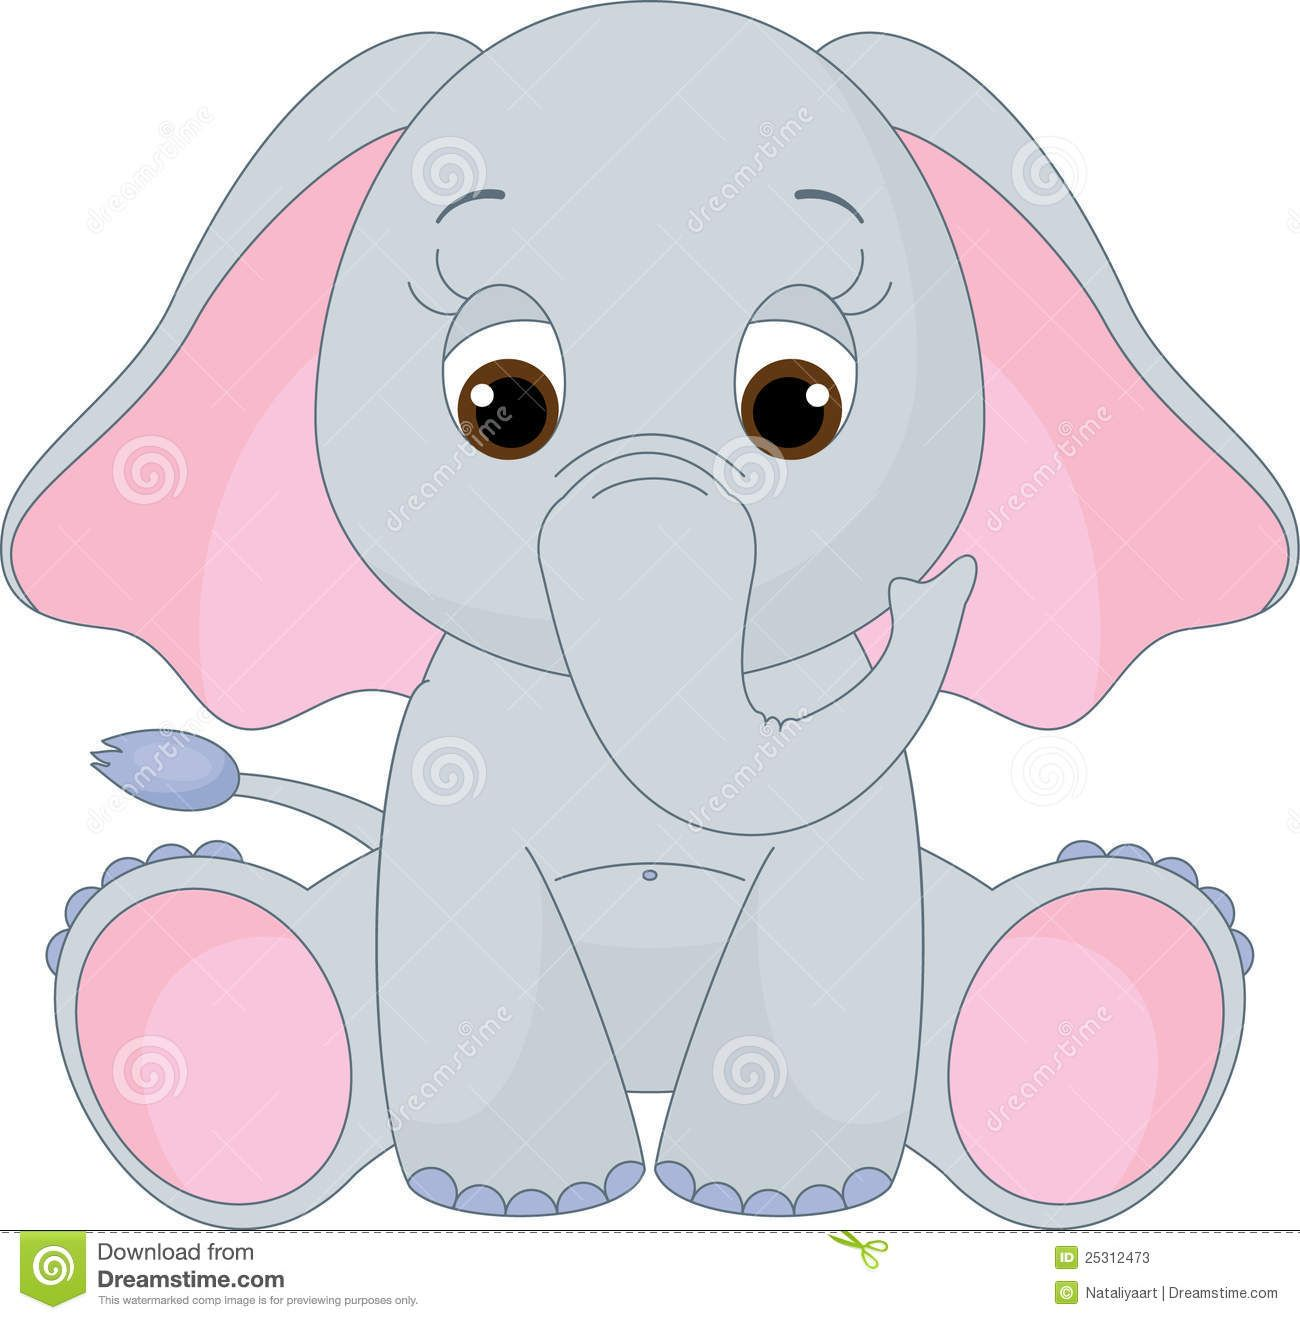 Illustration about Cute baby elephant sitting alone.